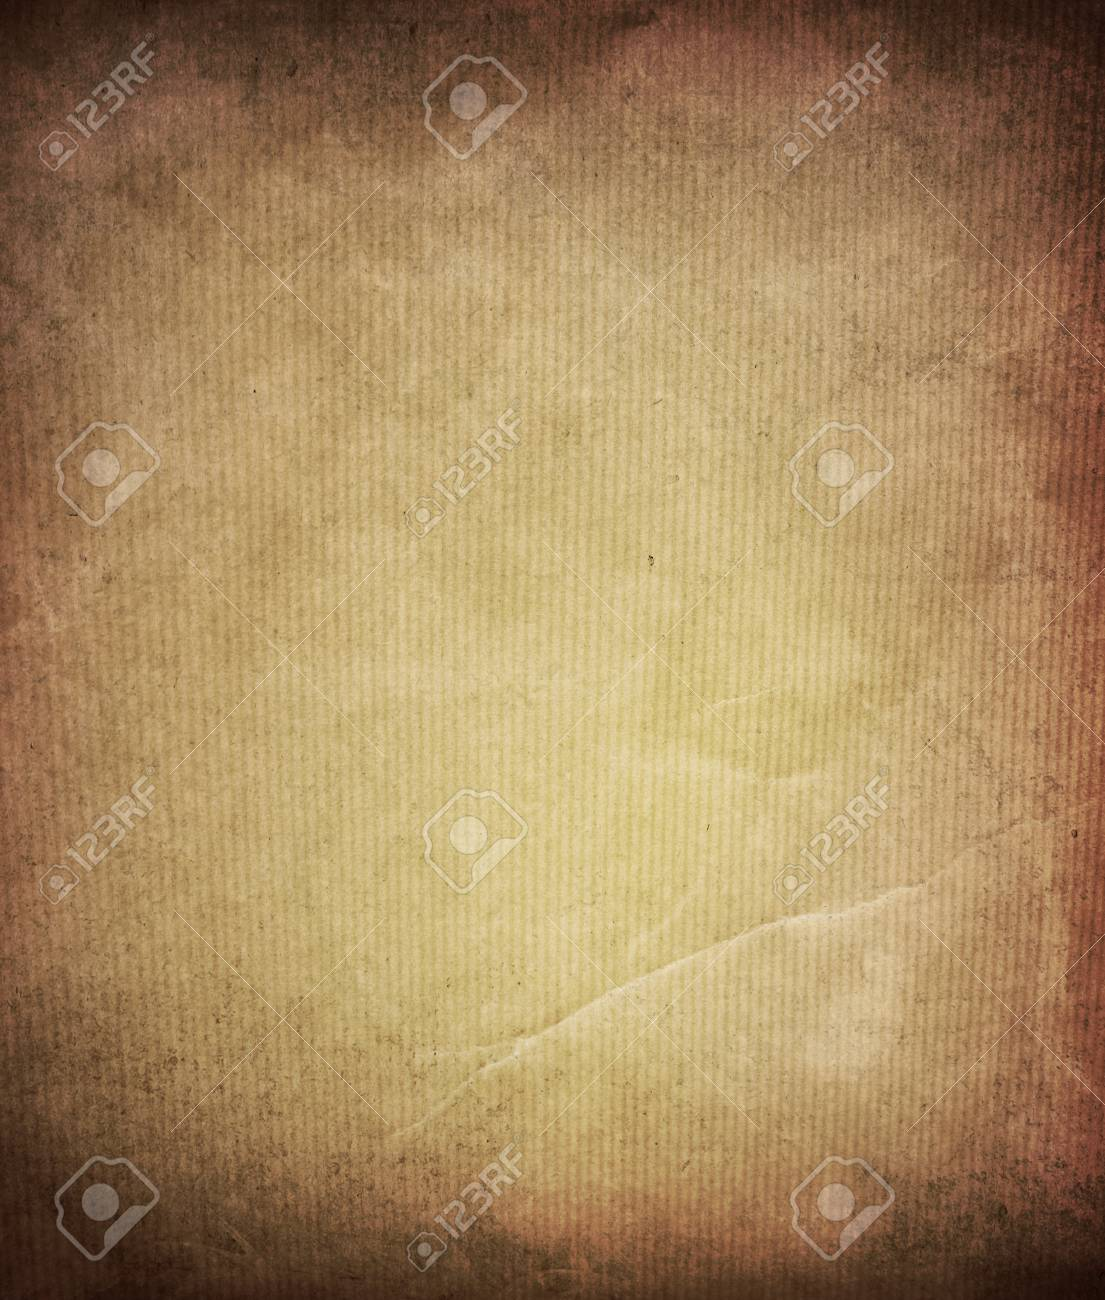 old shabby paper textures - perfect background with space for text or image Stock Photo - 18390860